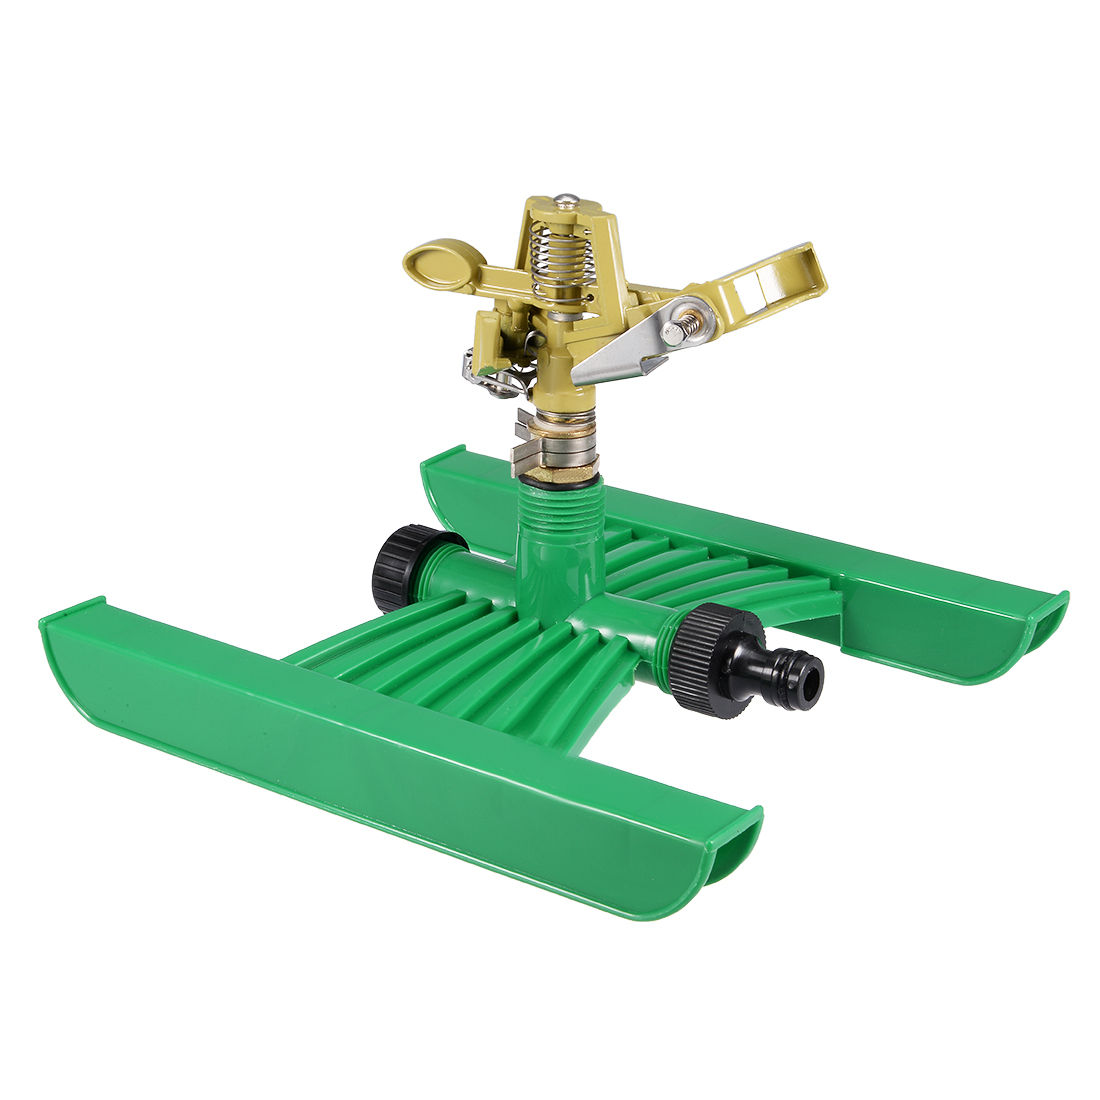 Unique Bargains H Shaped Base Zinc Alloy Garden Lawn Yard 360 Degree Rotary Water Sprinkler